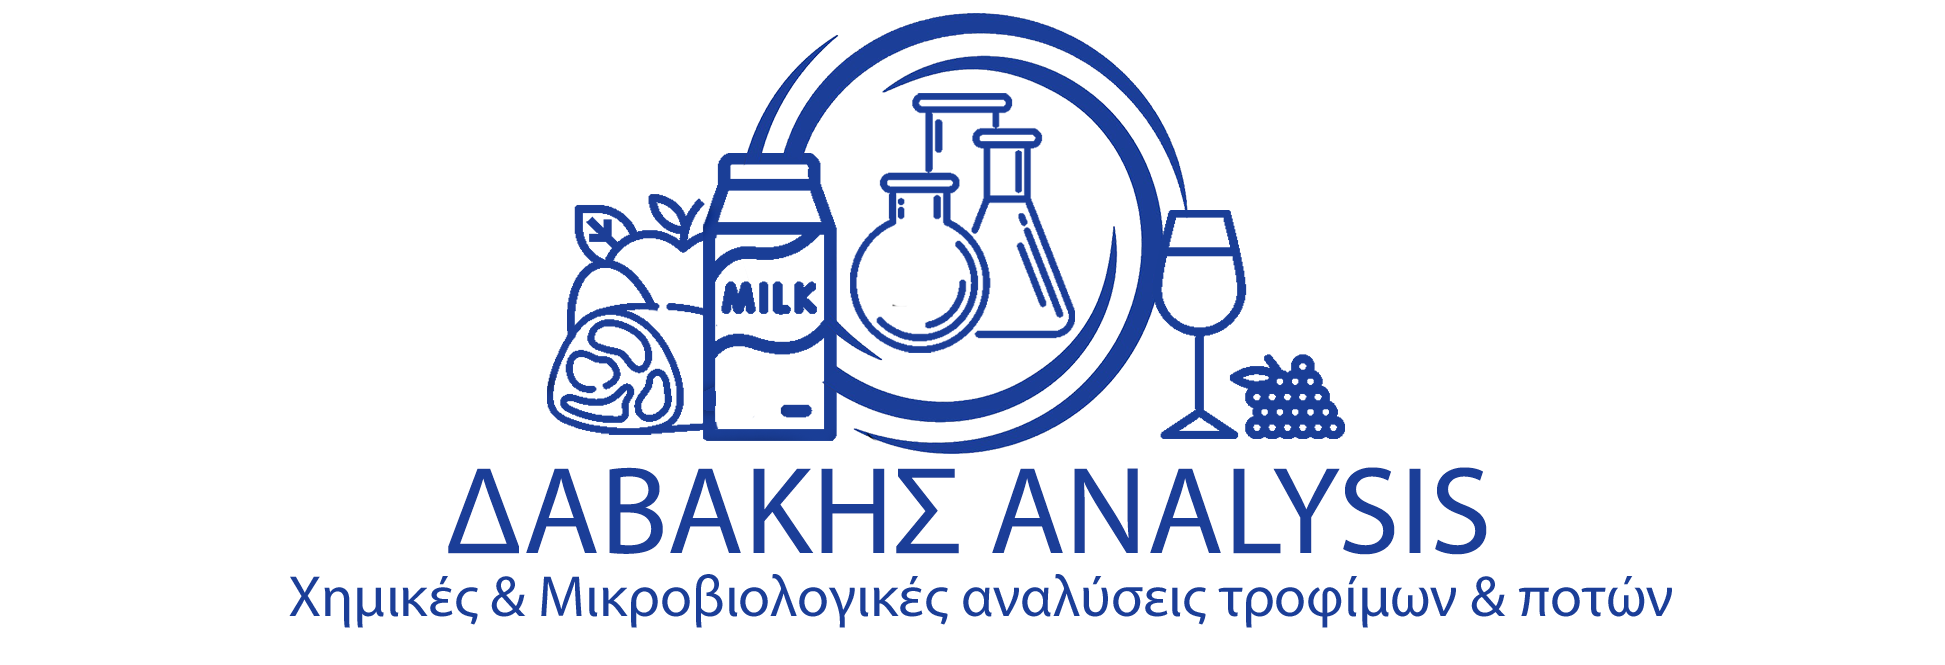 Logo Davakis Analysis